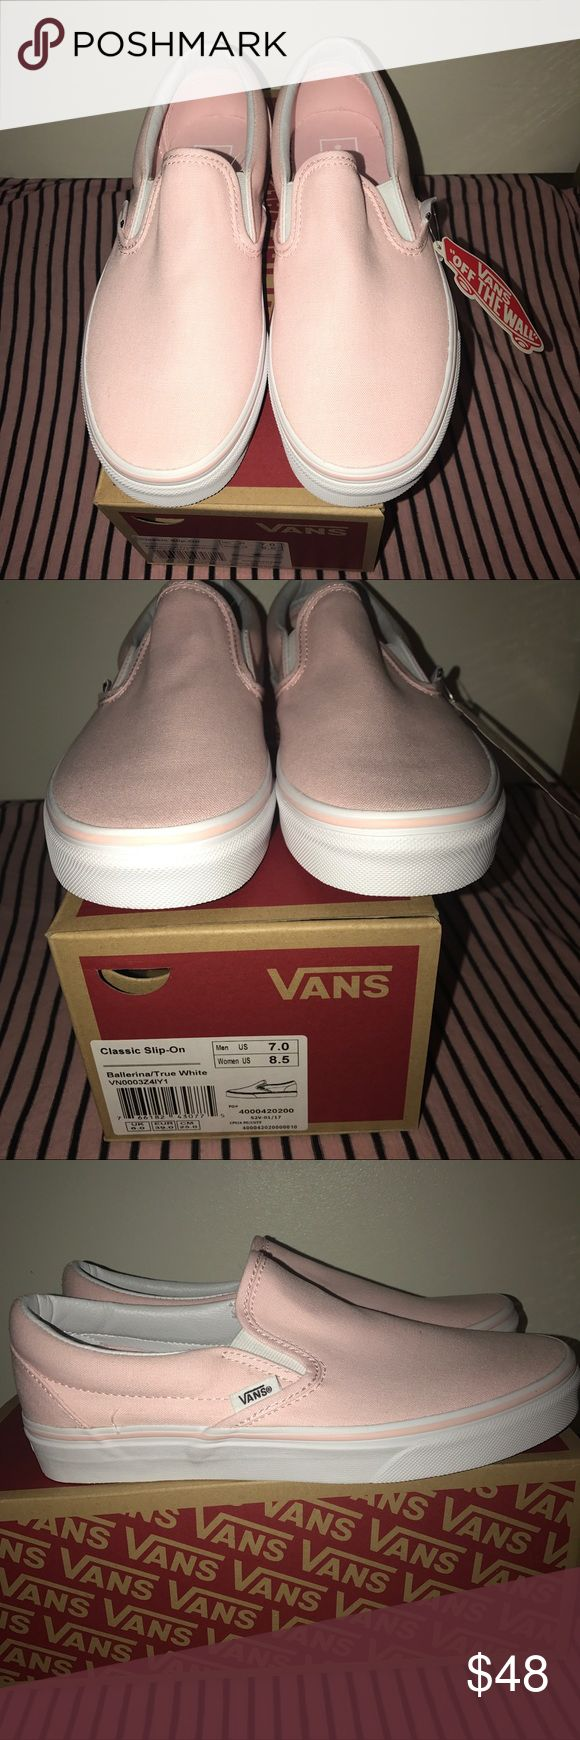 BNWT Ballerina Pink Slip-On Vans Brand new with tags! Never worn before! Beautiful blush colored slip on's, perfect for spring! Super comfortable and highly sough after. Men's size 7.0 which is equal to a women's 8.5. Comes with original box. UPDATE: Sold on Merc! Vans Shoes Sneakers